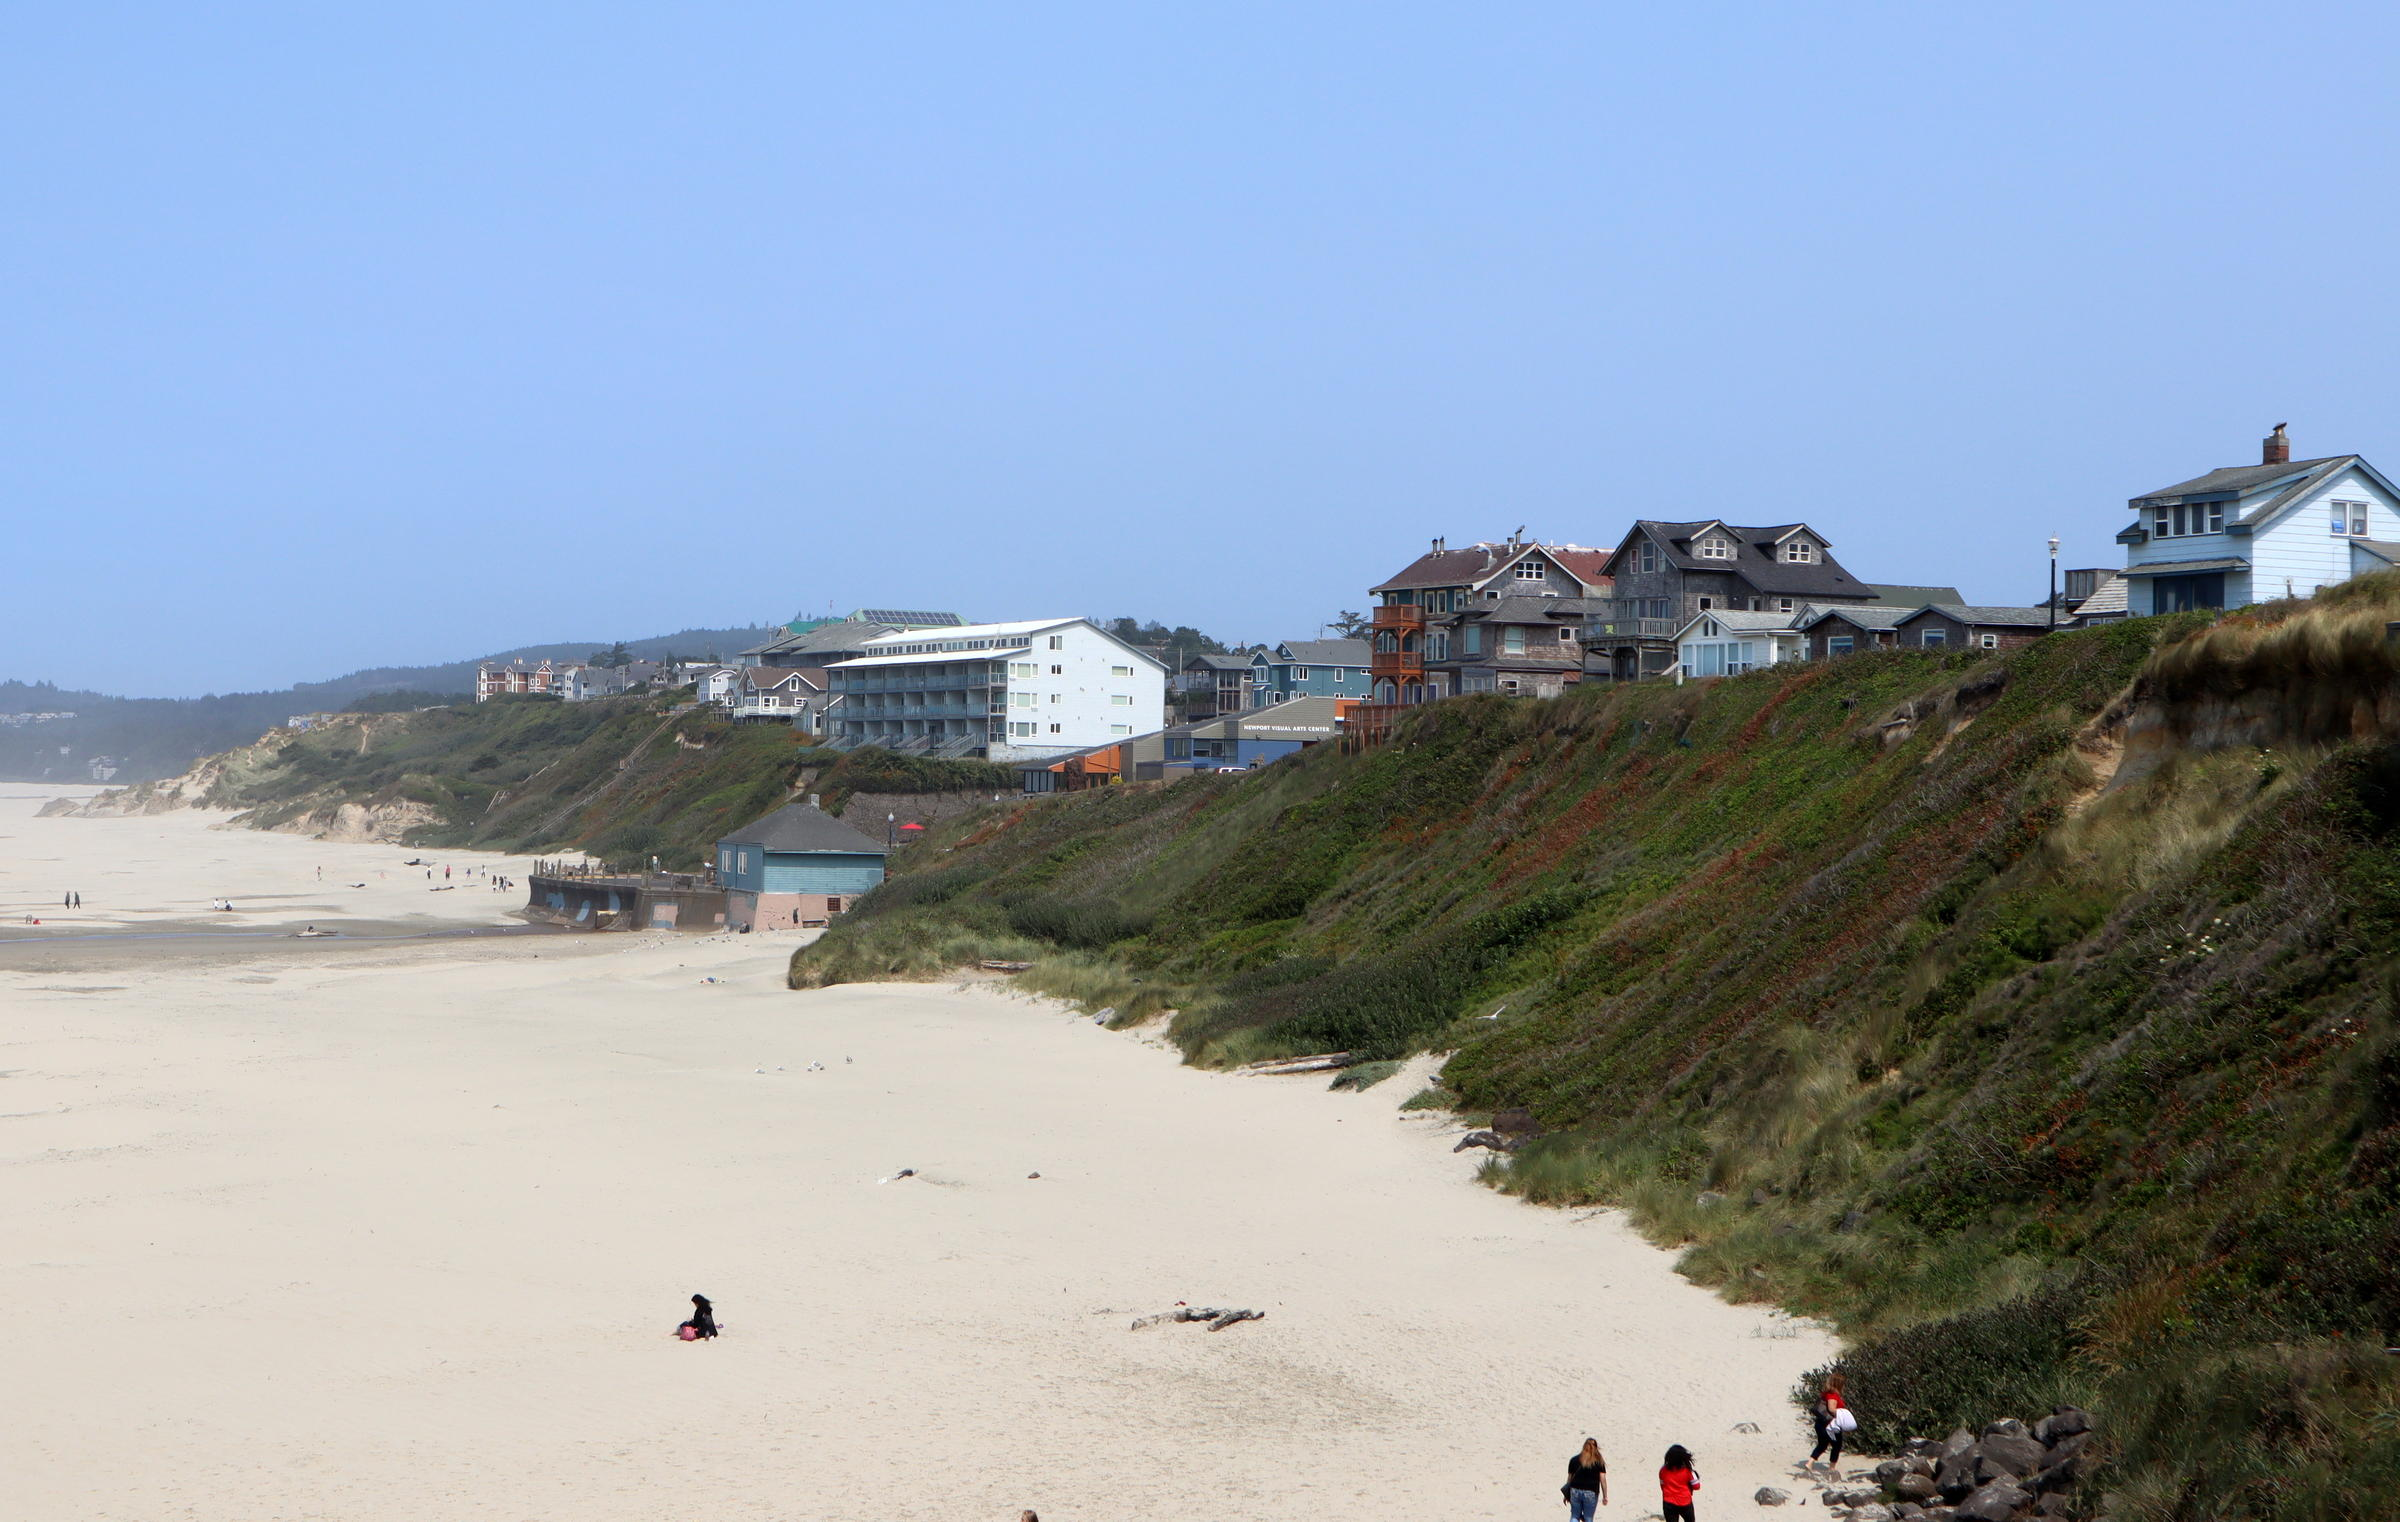 Newport S Nye Beach Neighborhood Has The City Highest Concentration Of Short Term Vacation Als